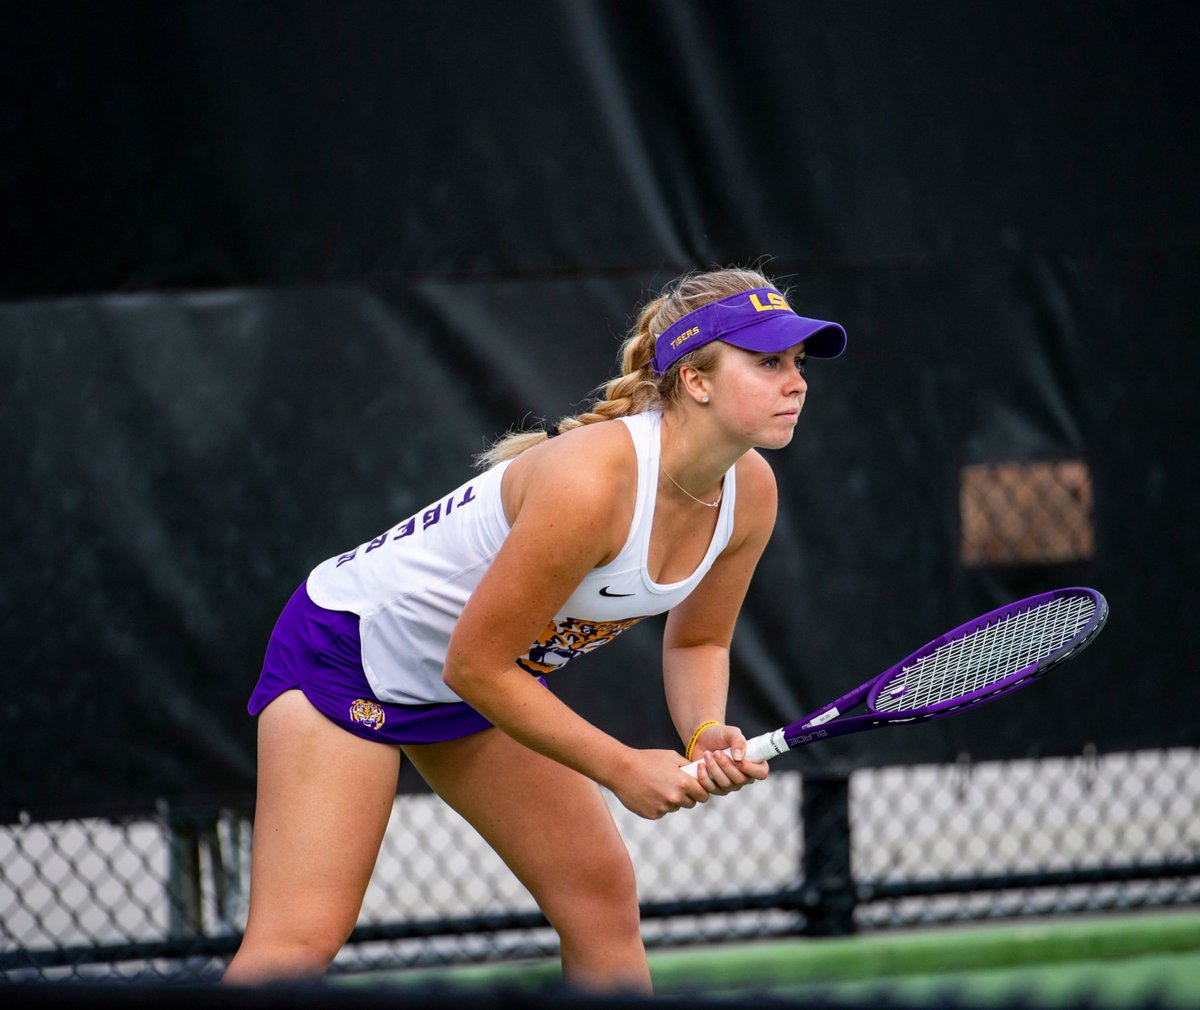 After a historical first two years that included a national championship and  All-American honors, rockstar Eden Richardson is looking to add more to the resume in her junior year.  #TigerTuesday #GeauxTigers <br>http://pic.twitter.com/9Uc2ufkzuK